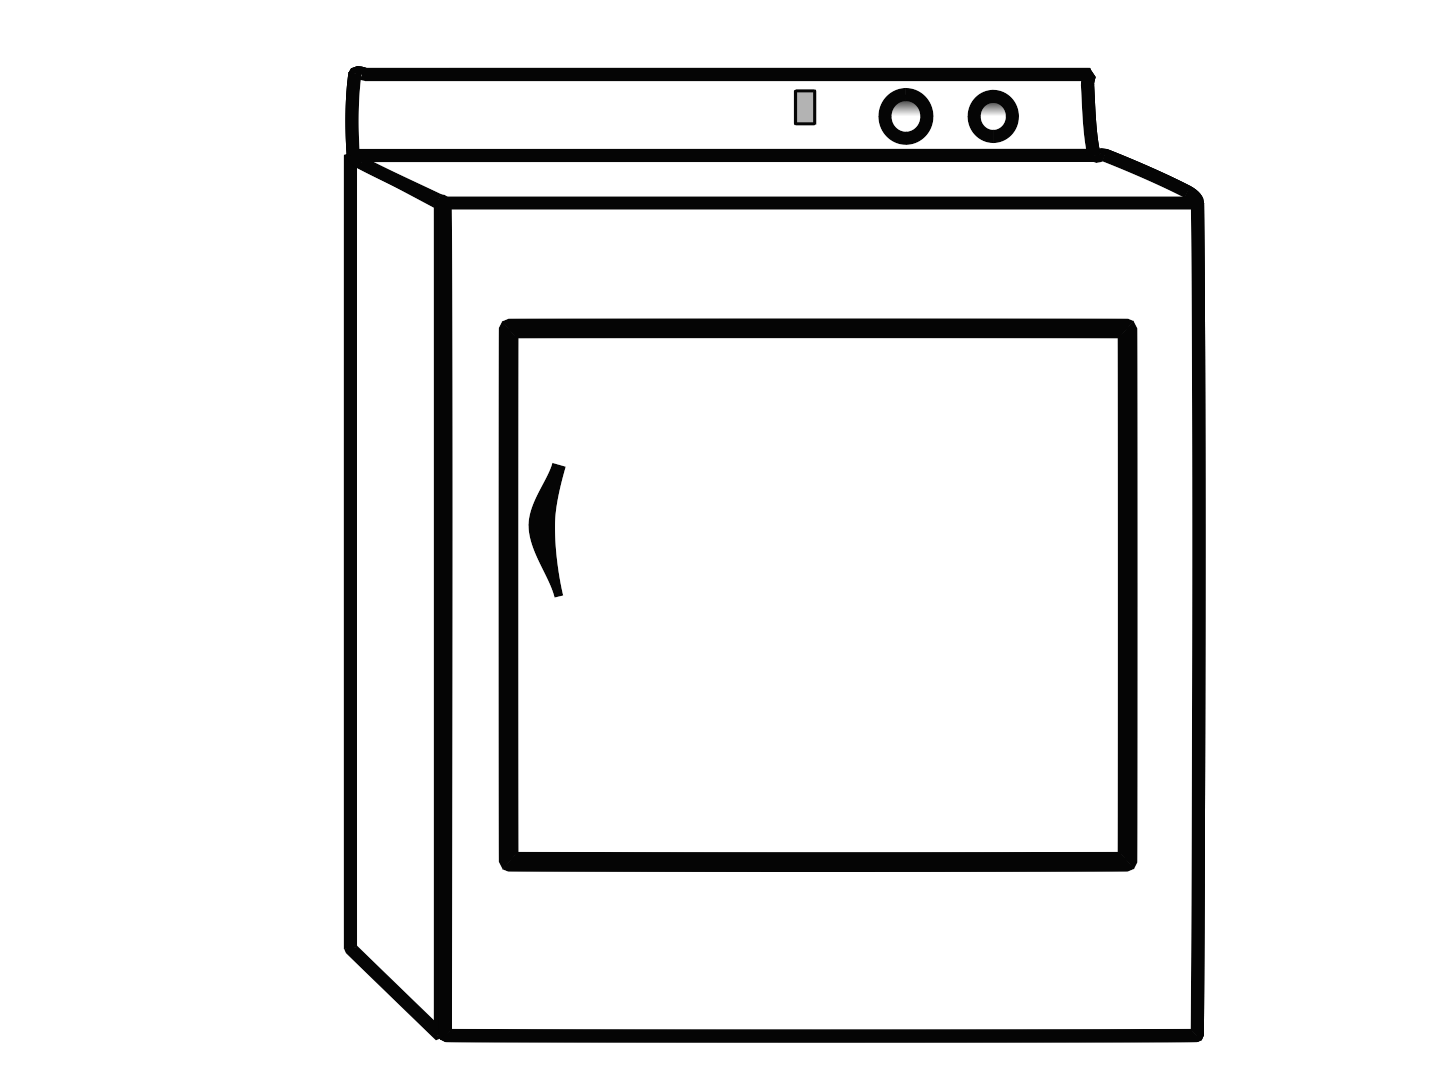 Machine clipart object Machine Clip and Download Washing